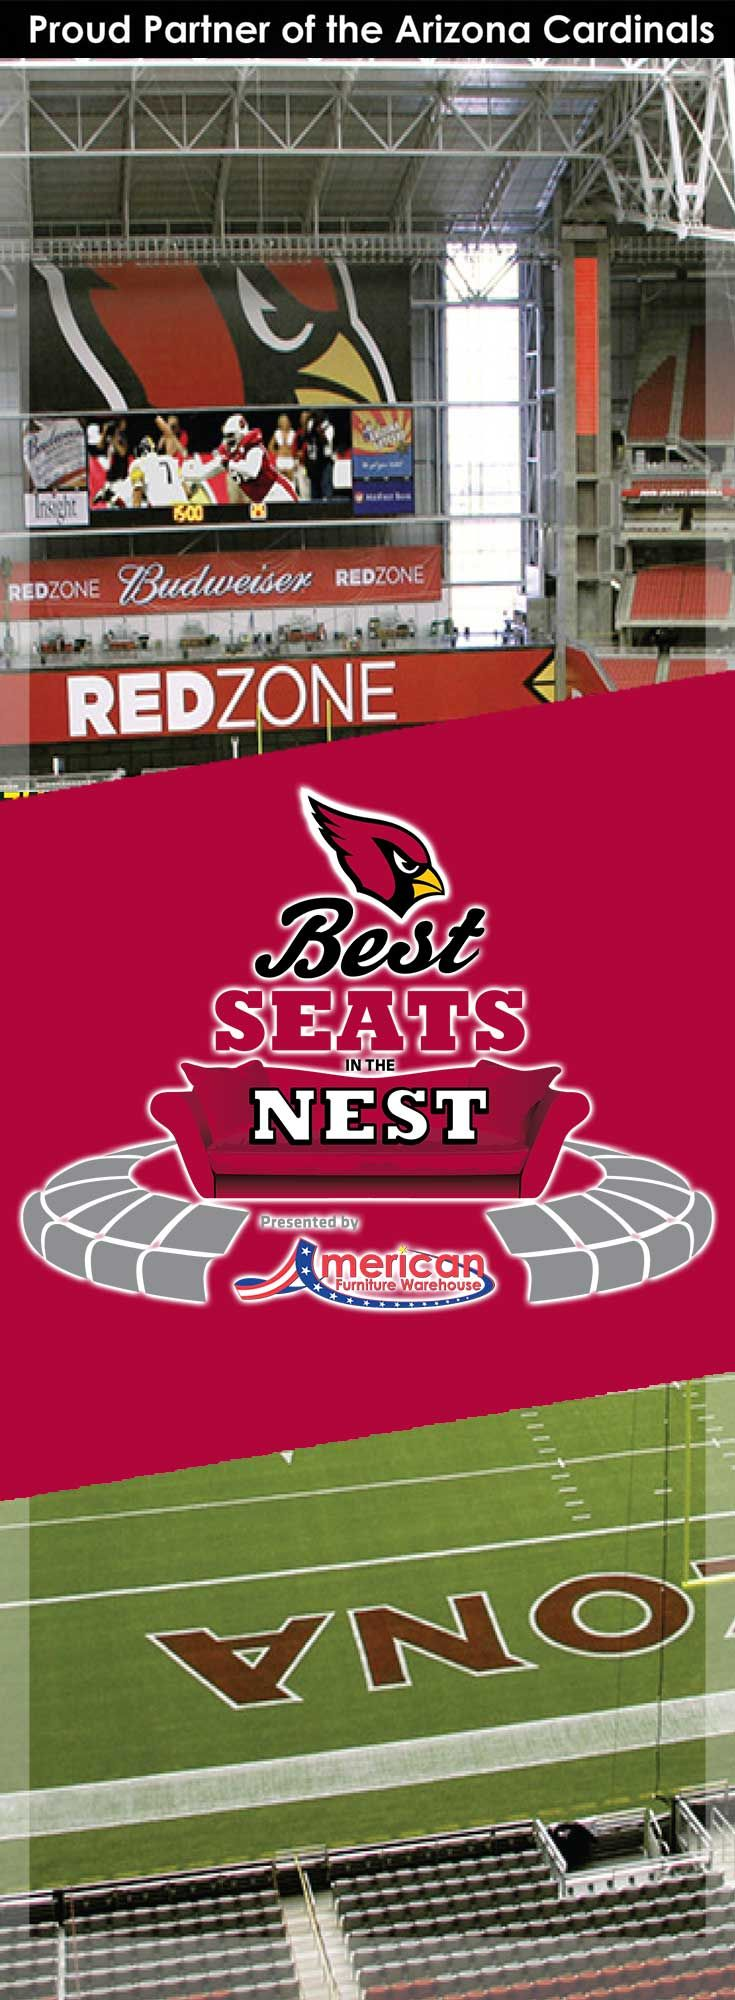 Calling all Arizona Cardinals fans, enter for your chance to win tickets to the next home game! Visit one of our two AZ stores to enter our Best Seats in the Nest sweepstakes for your chance to win tickets and much, much more! For more information and official rules please go to https://afw.com/cardinals.